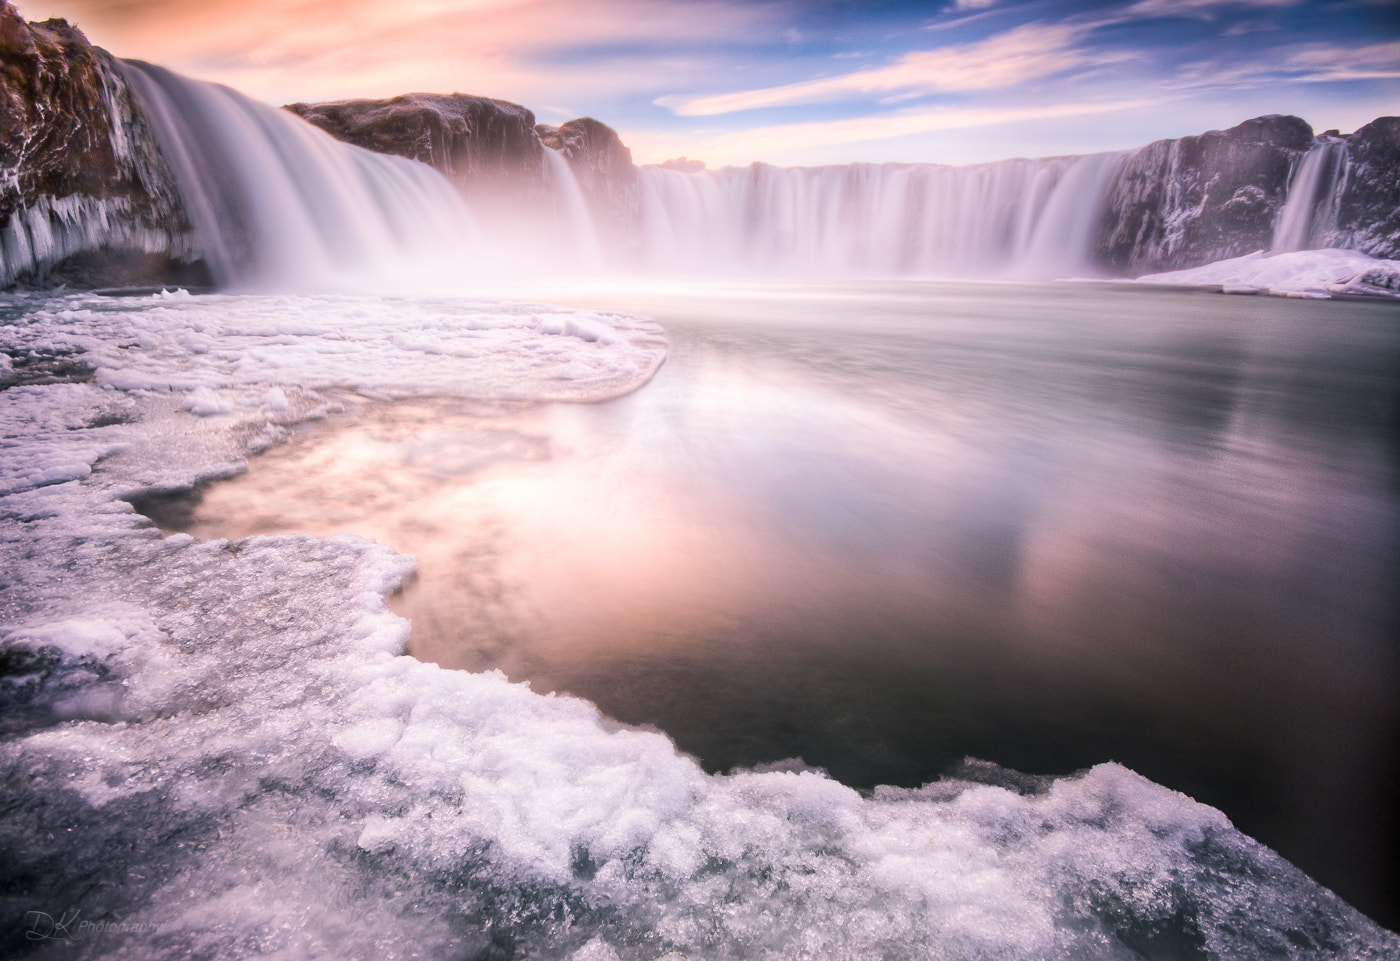 Photograph Waterfall of the Gods by Derek Kind on 500px